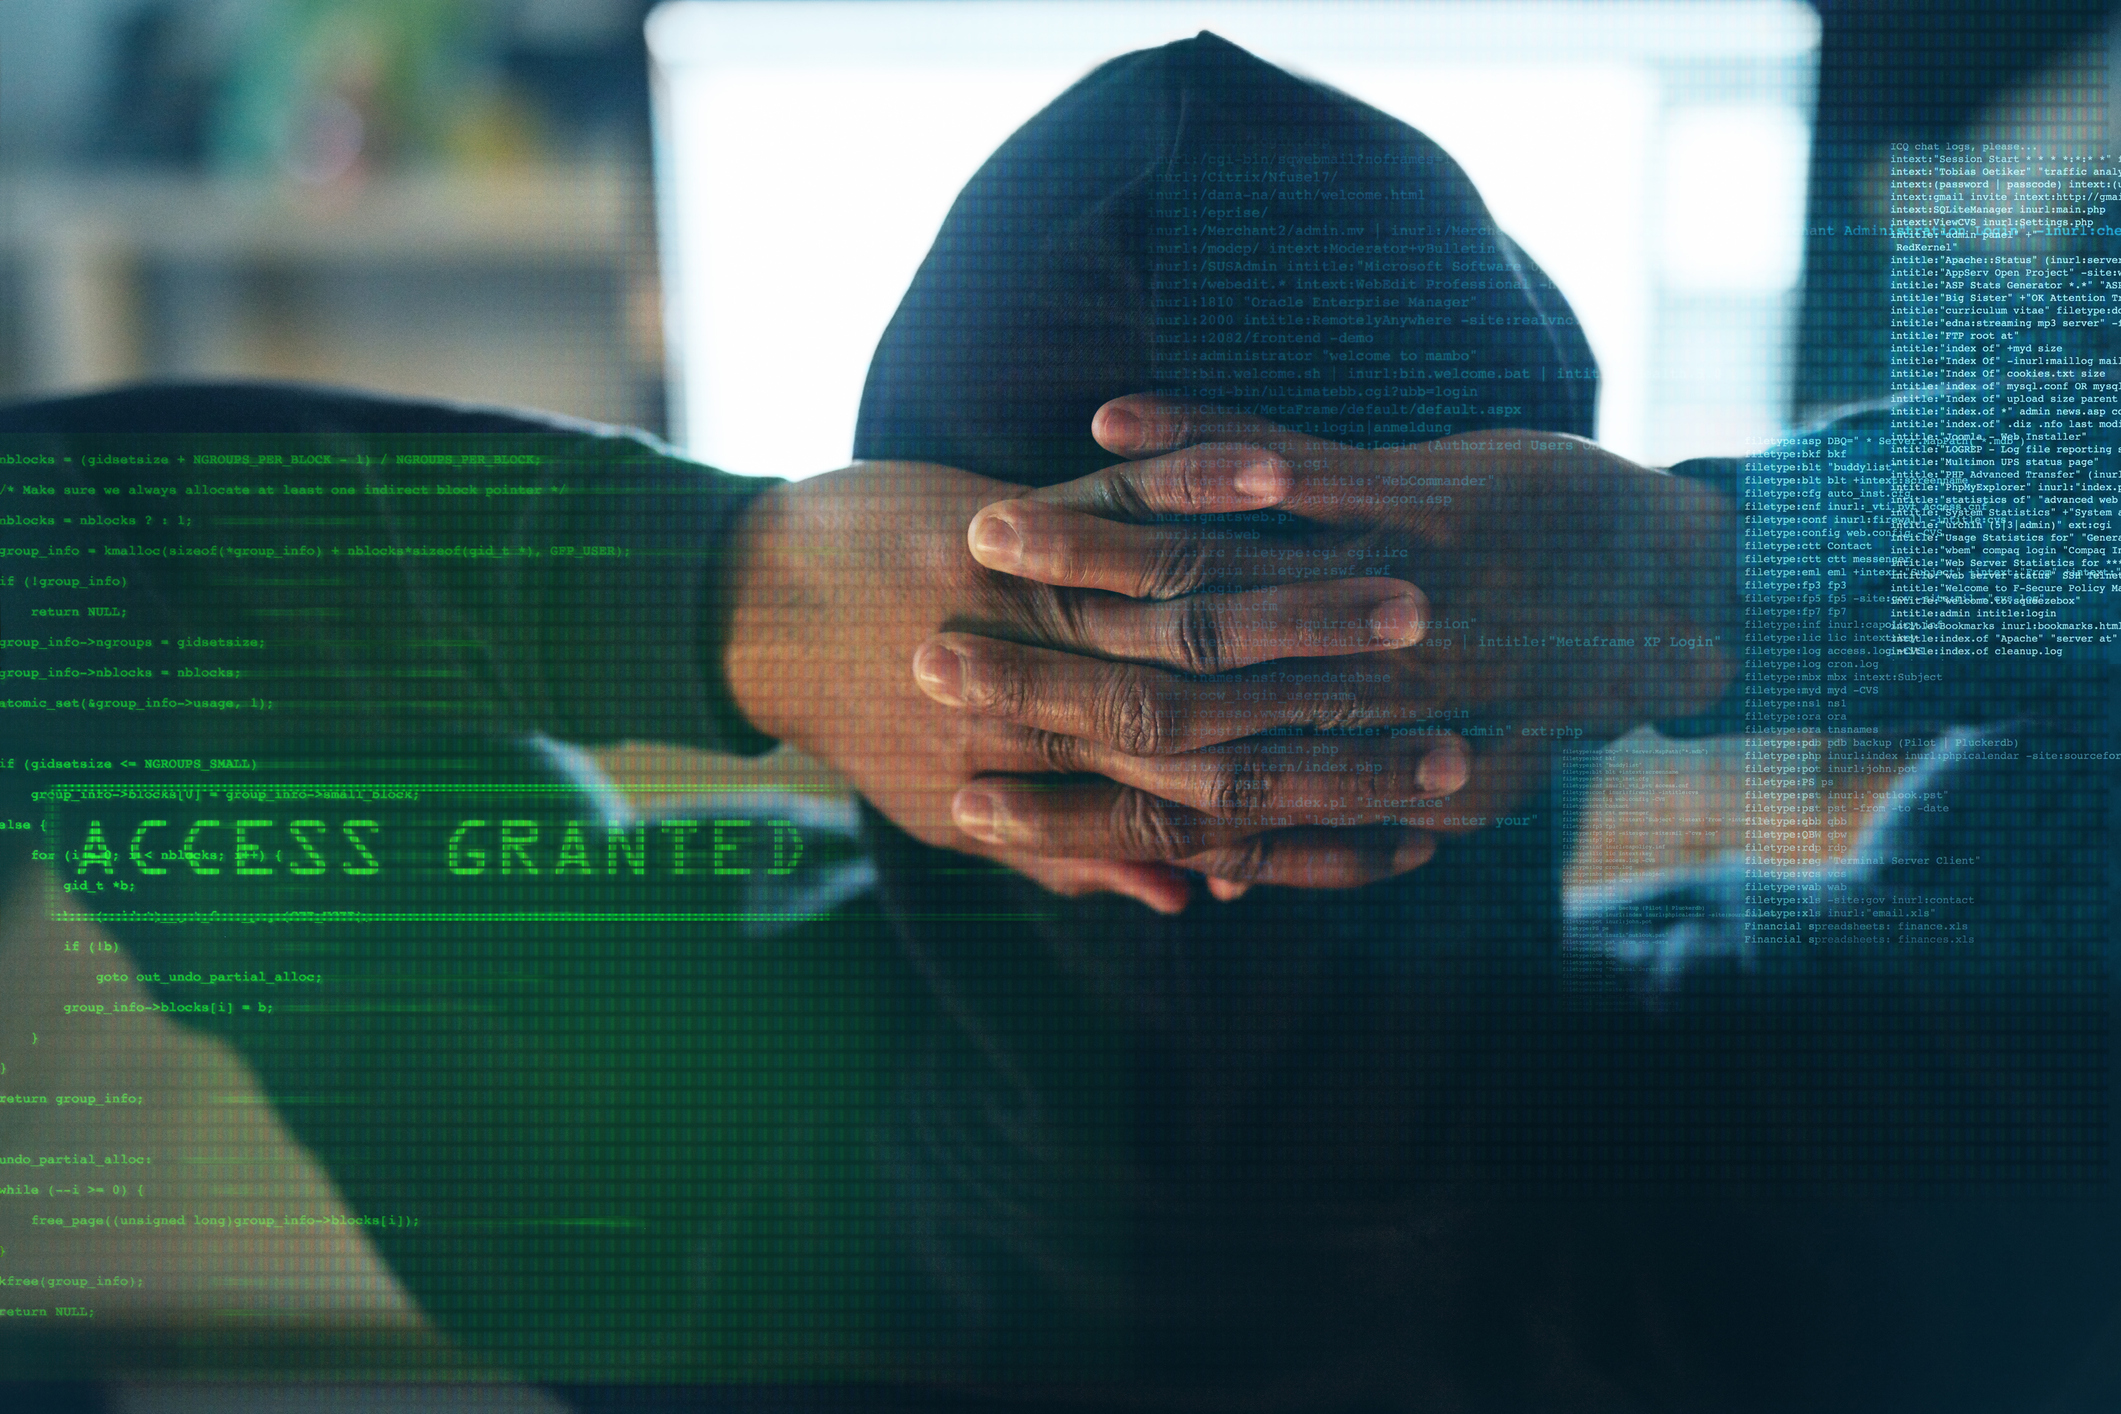 Learn penetration testing skills to get you root or domain admin access.